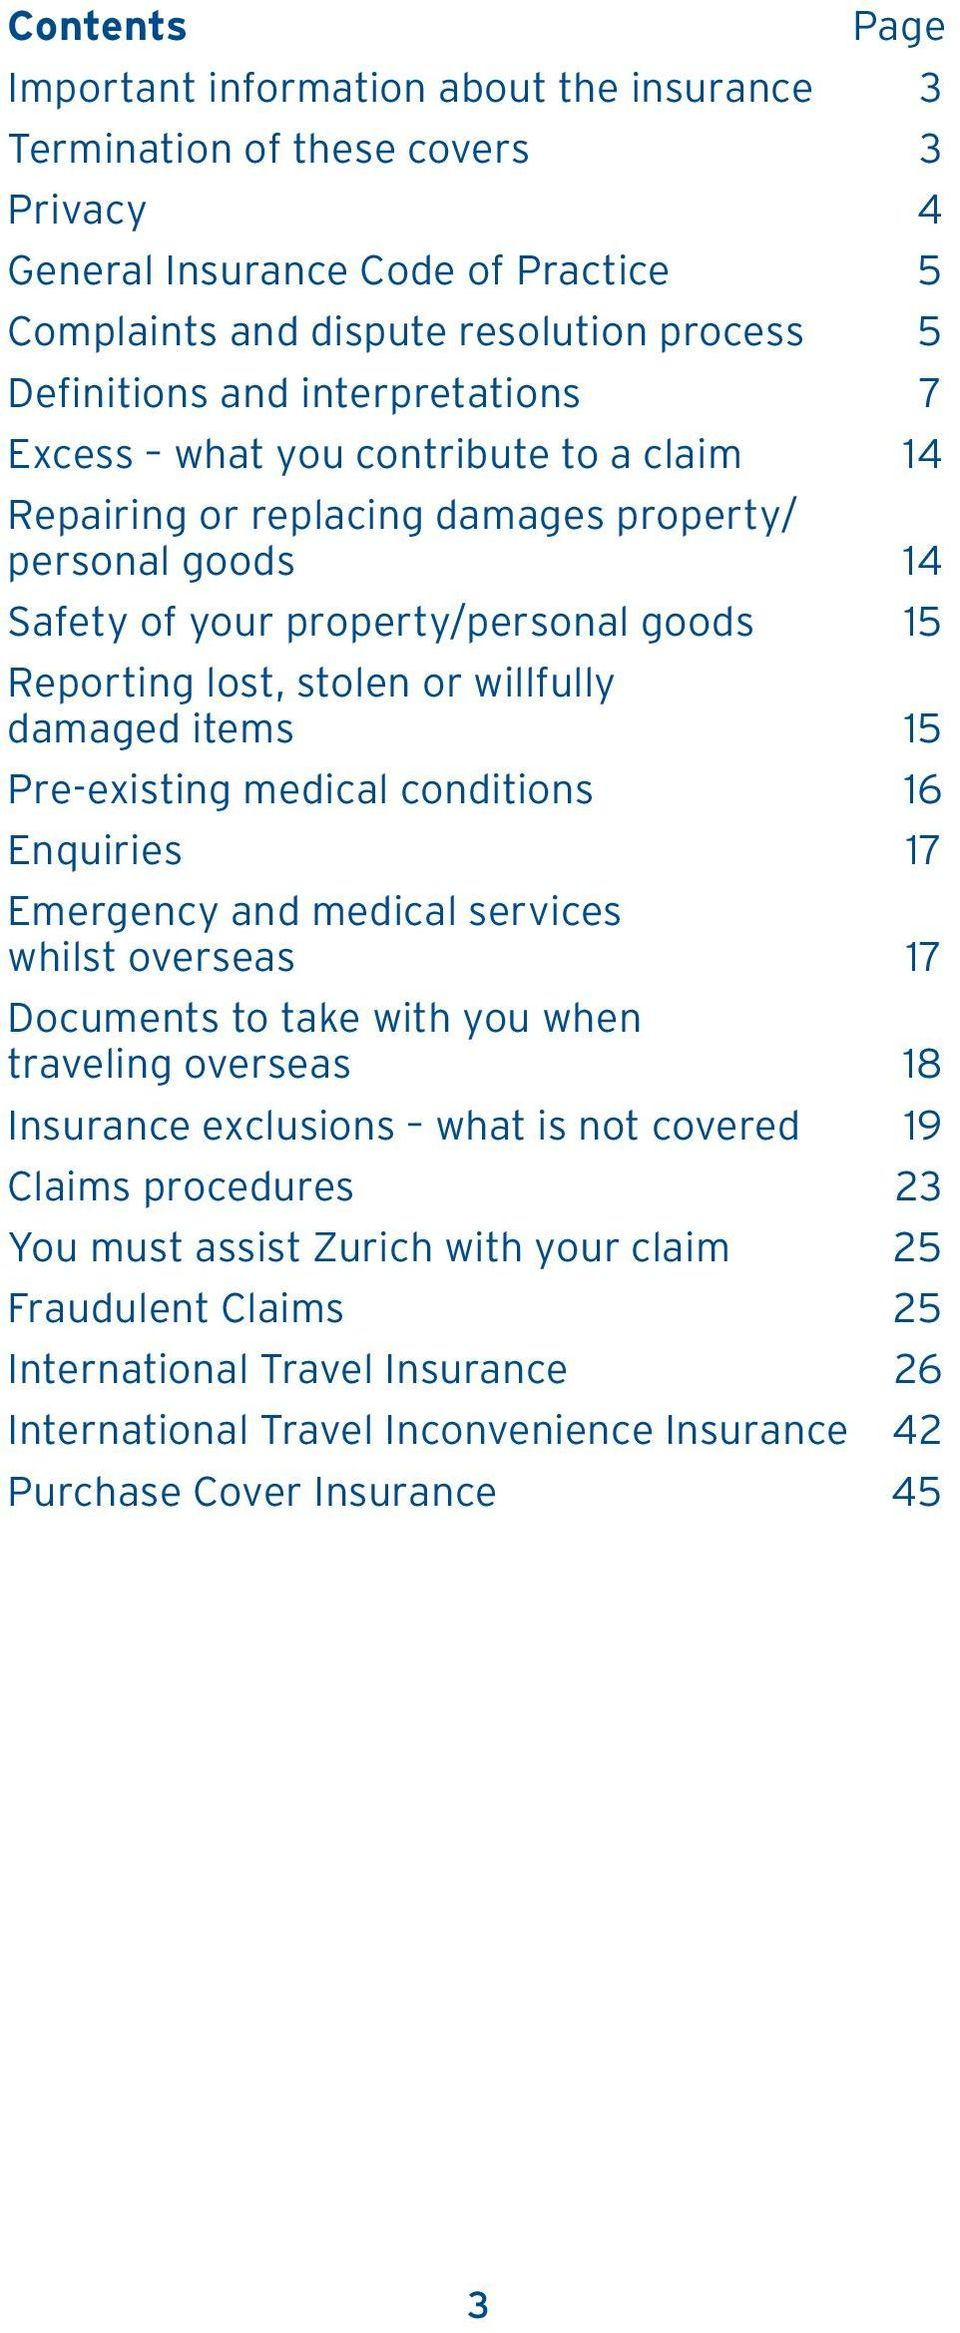 damaged items 15 Pre-existing medical conditions 16 Enquiries 17 Emergency and medical services whilst overseas 17 Documents to take with you when traveling overseas 18 Insurance exclusions what is